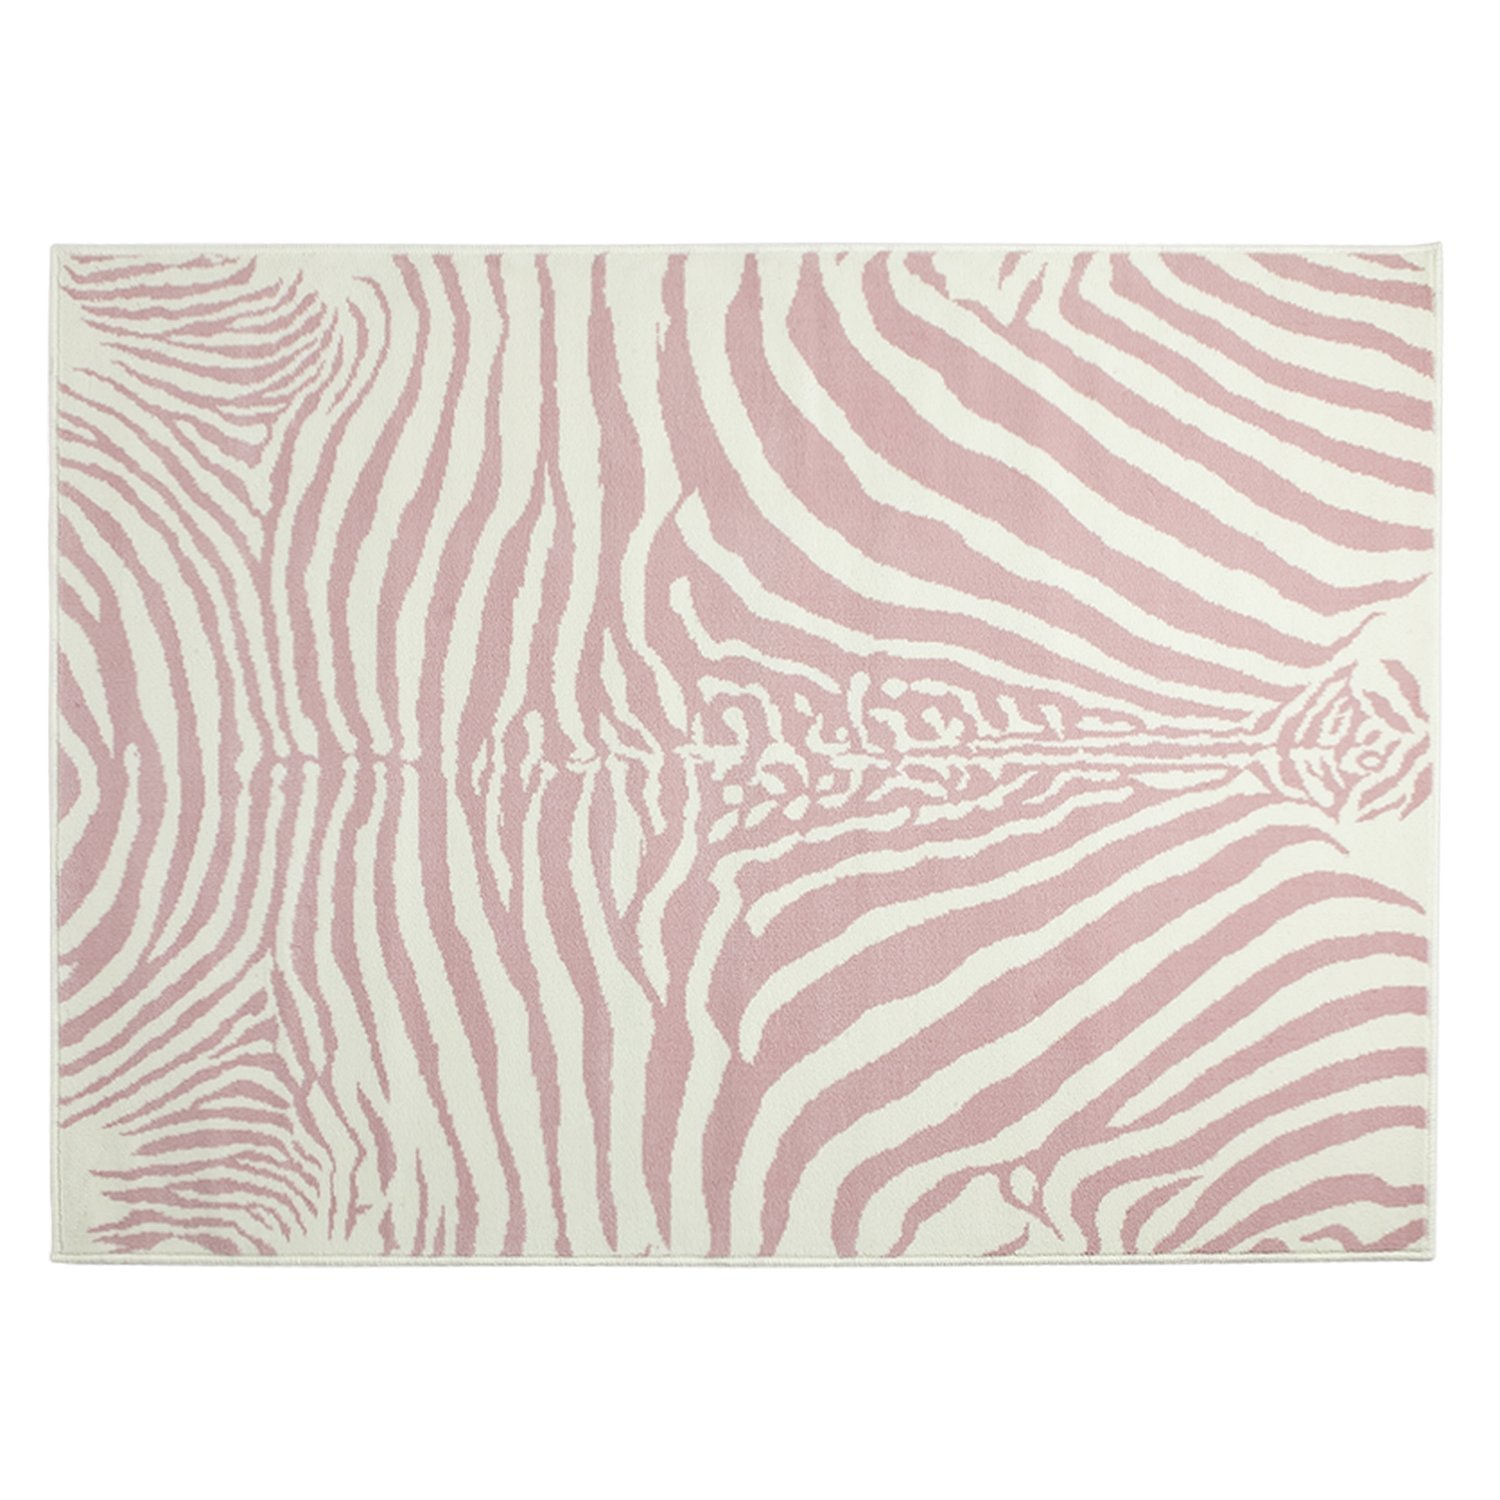 Lorena Canals A-Z-1 Zebra Tiermuster, pink